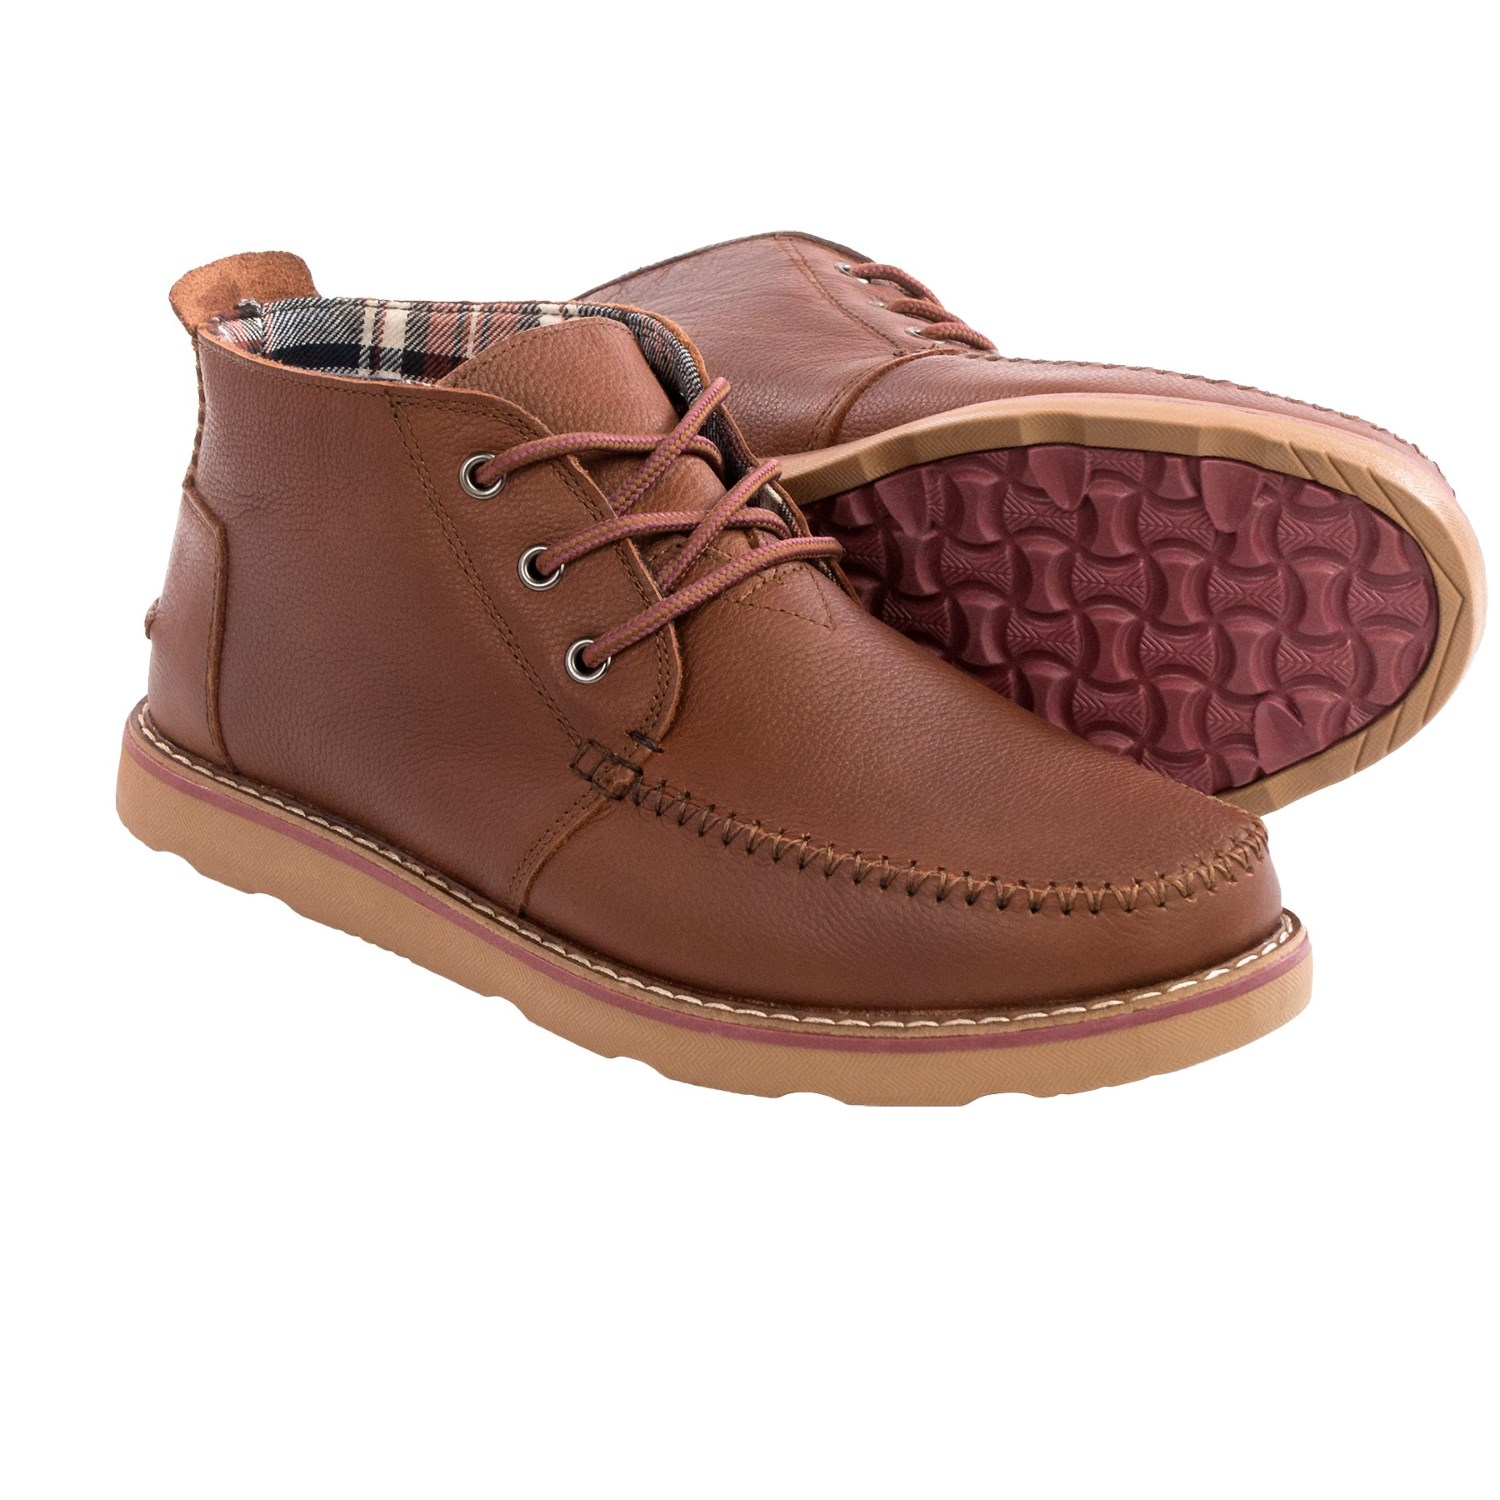 toms leather chukka boots for